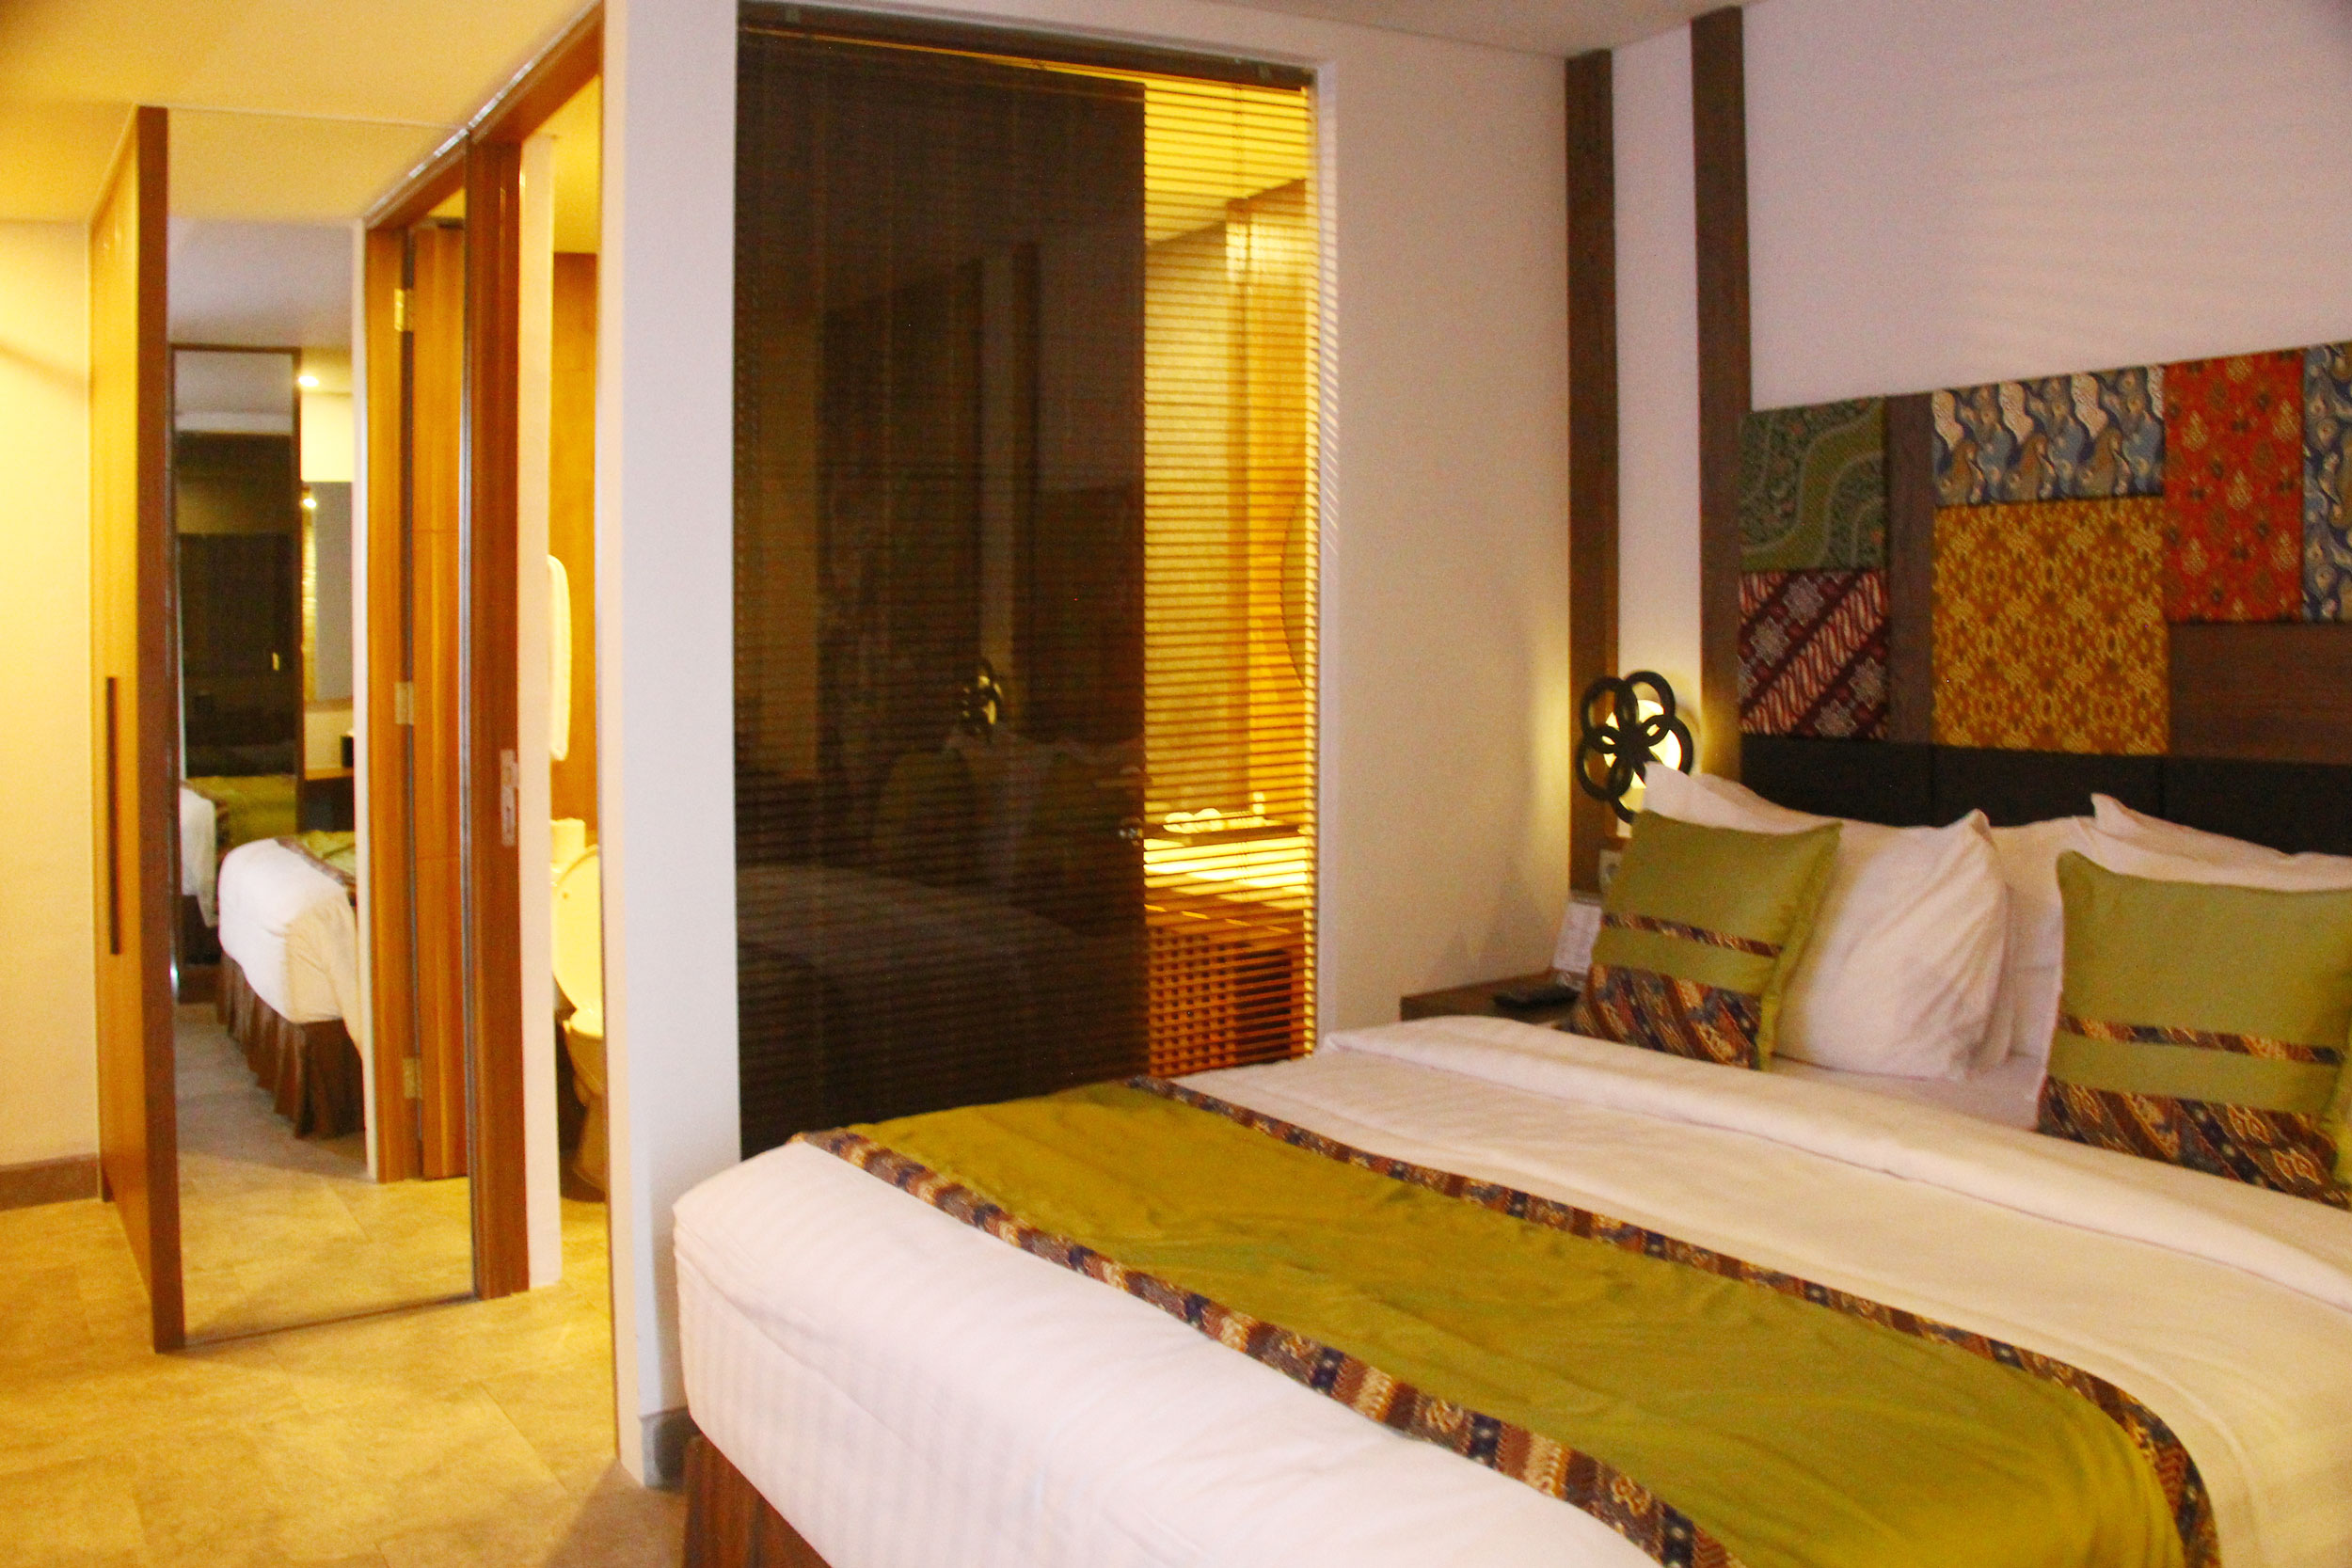 @peekholidays's cover photo for 'Vasanti Kuta Hotel: Have You Heard About It? | Peek Holidays'